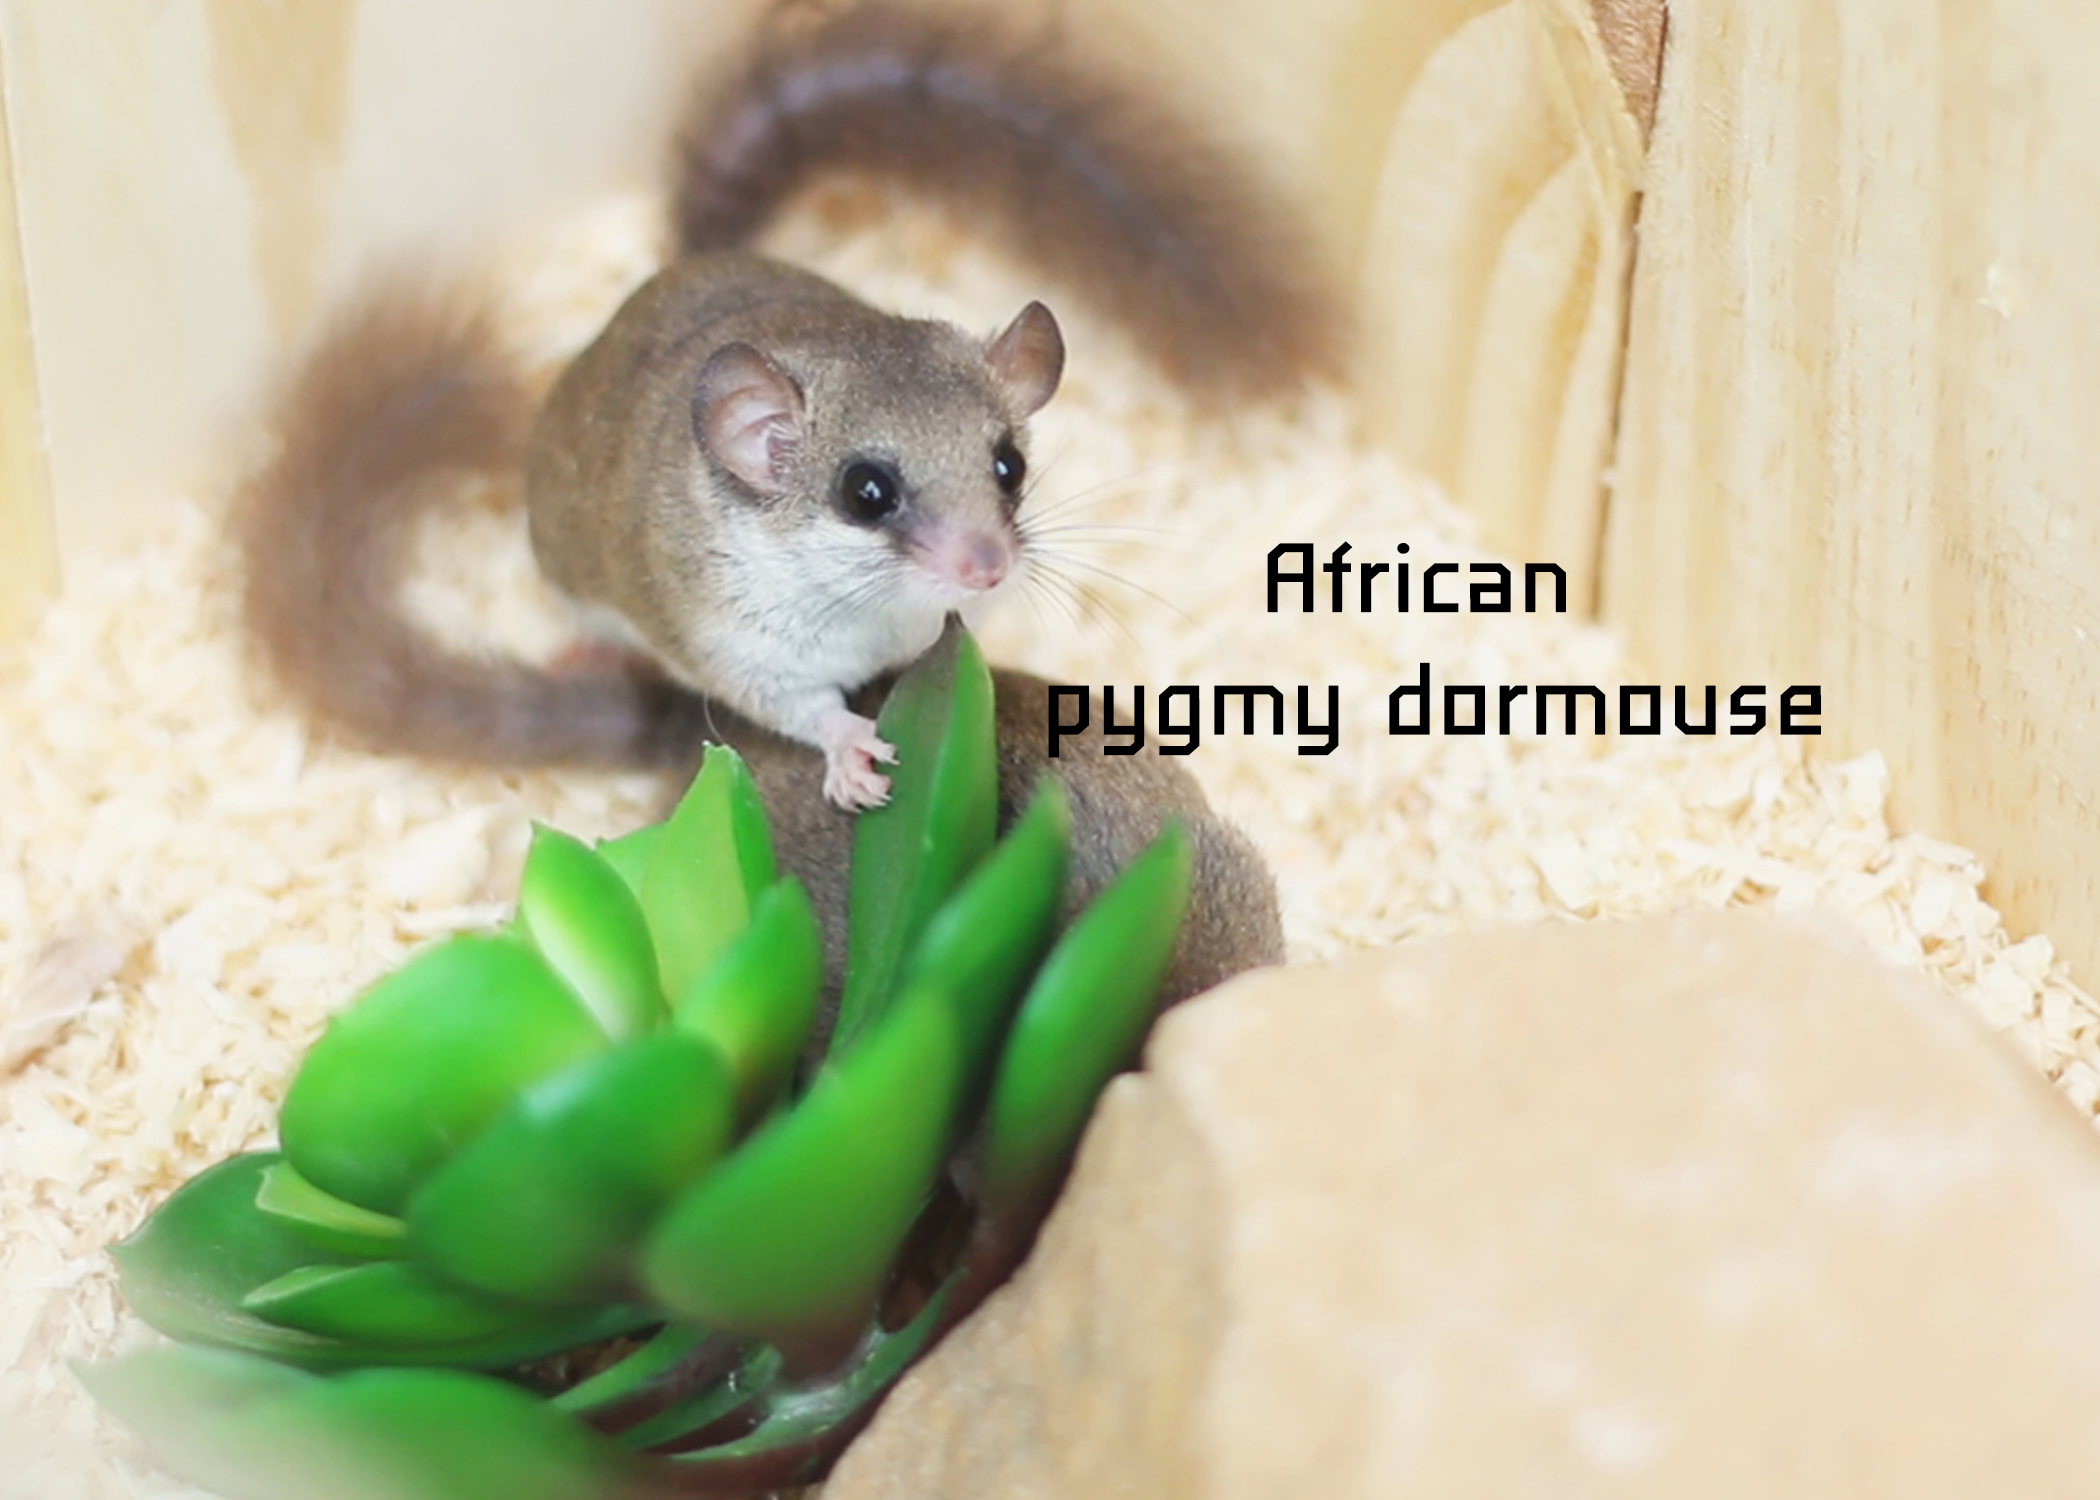 African pygmy dormouse